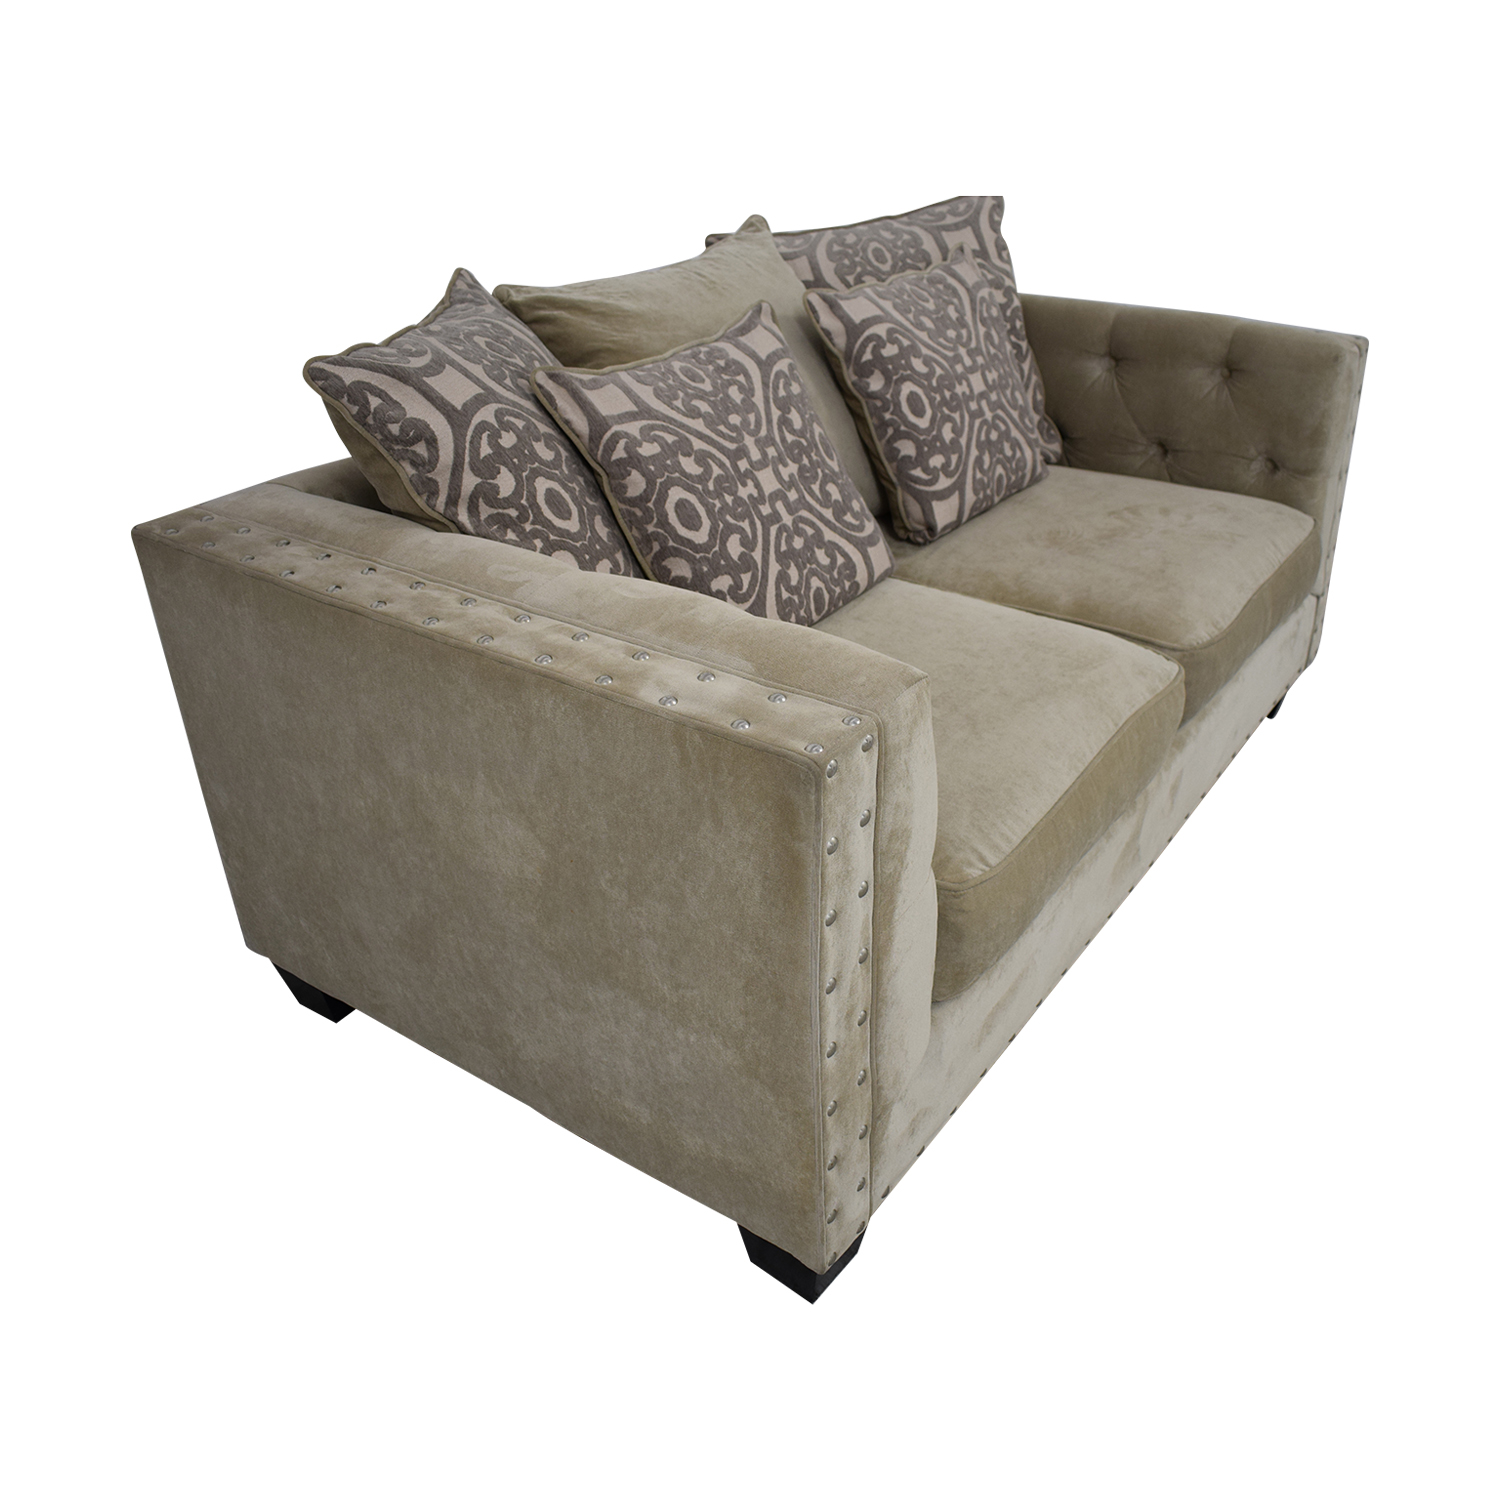 buy Cindy Crawford Home Calista Microfiber Loveseat Cindy Crawford Home Loveseats